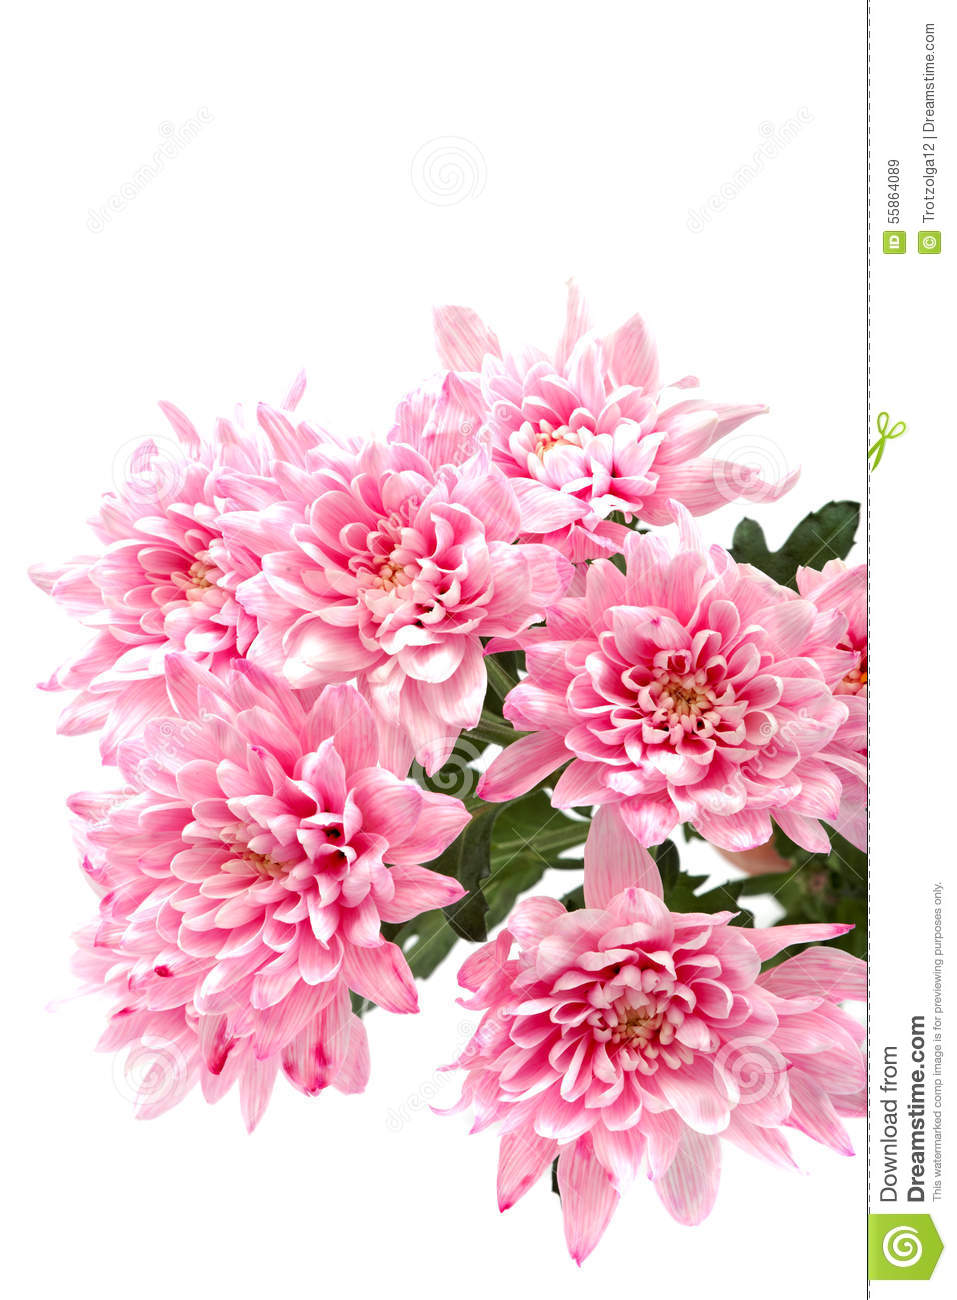 Bouquet of pink chrysanthemums on white background.